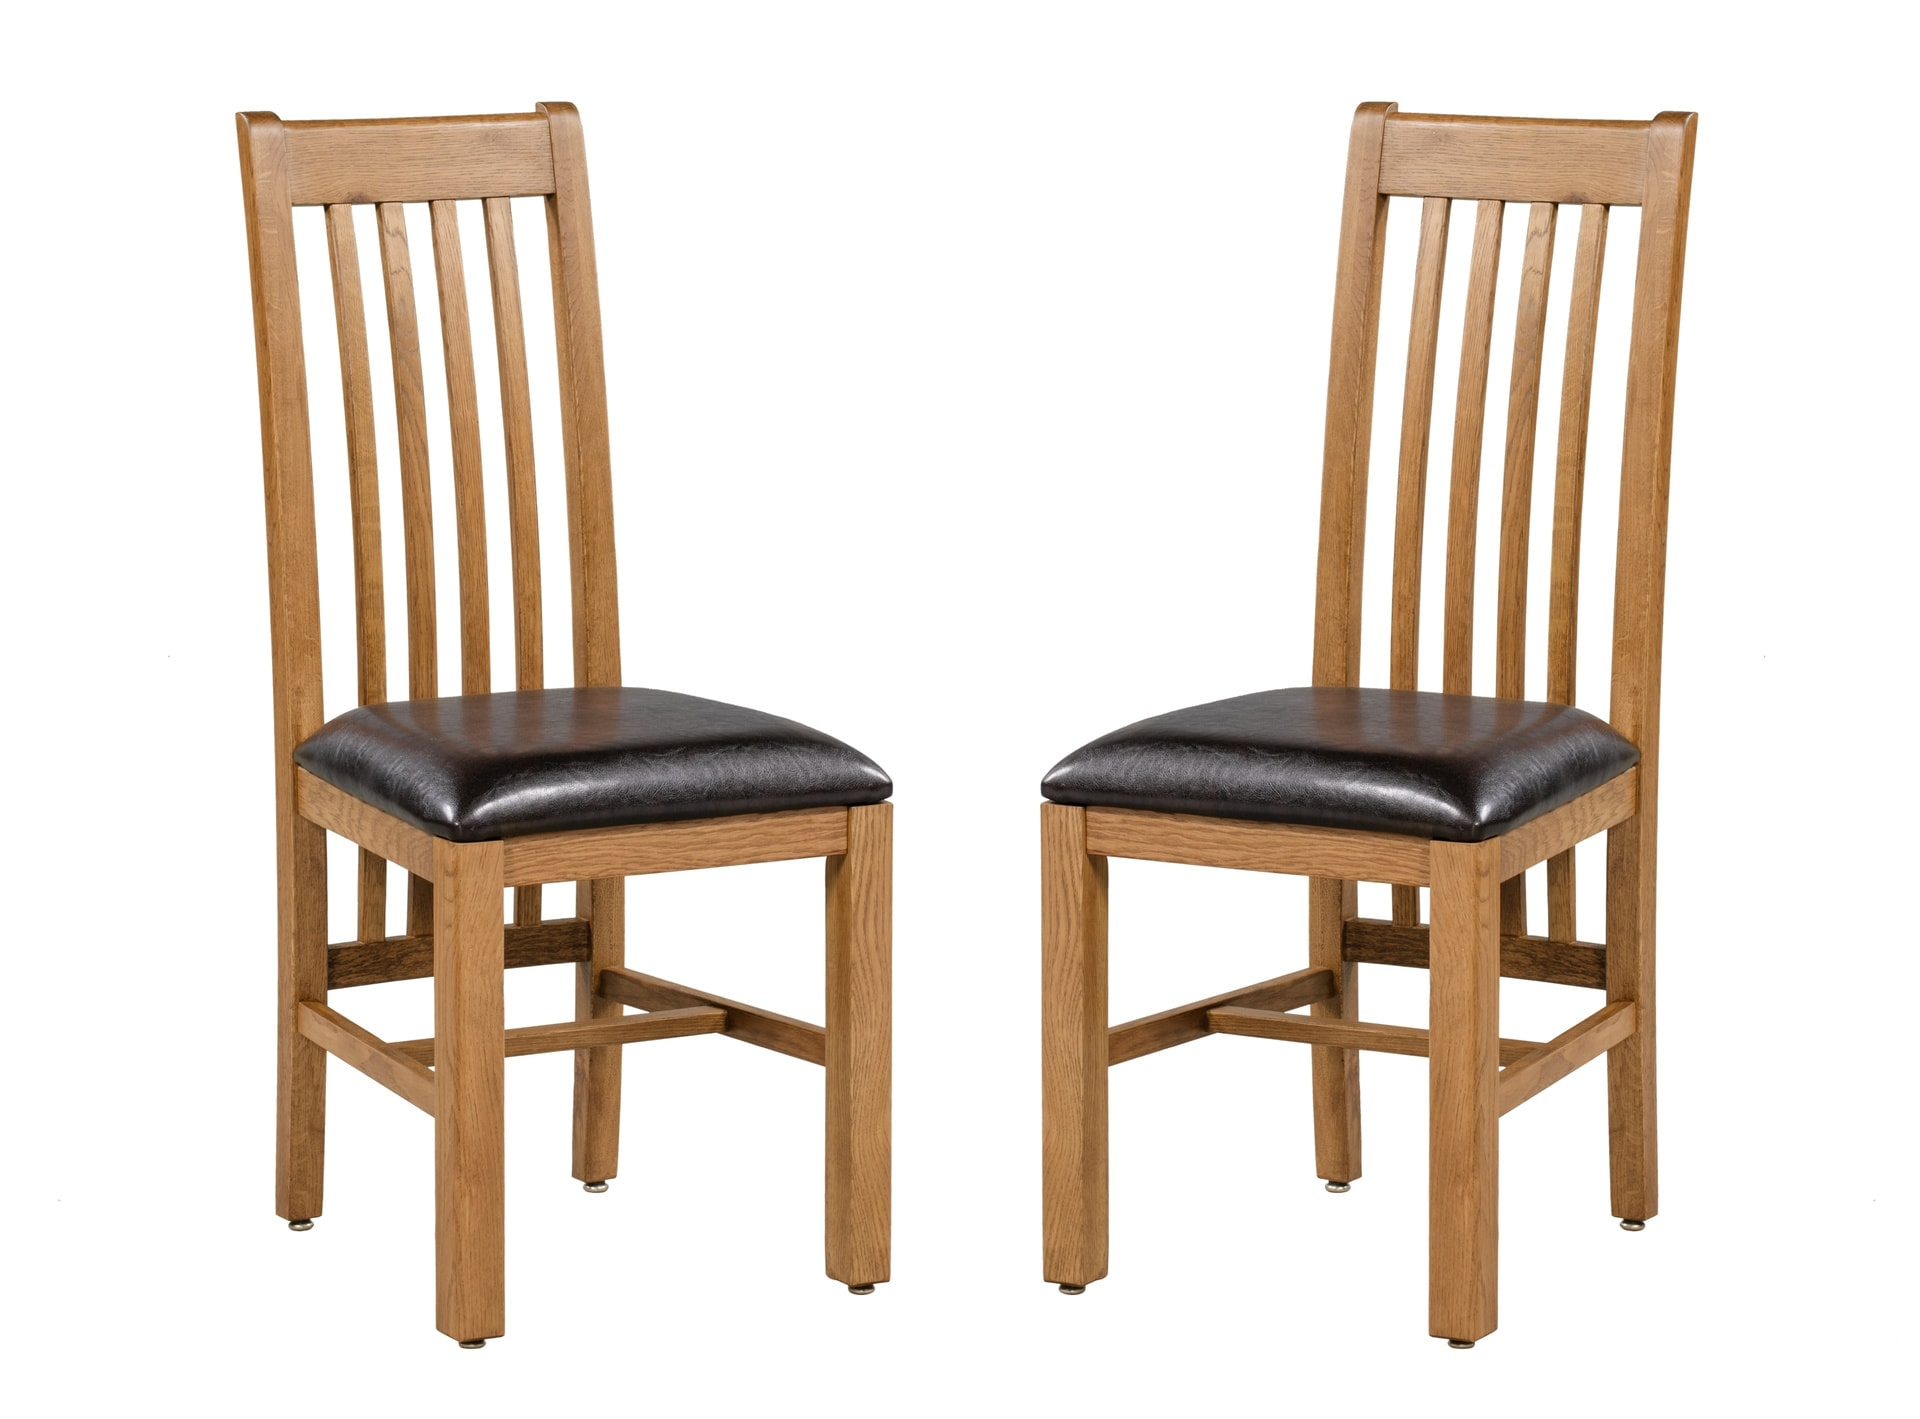 8 Chair Dining Set Hillsboro Dining Set Of 9 With Portland 2800 Table And 8 Chairs